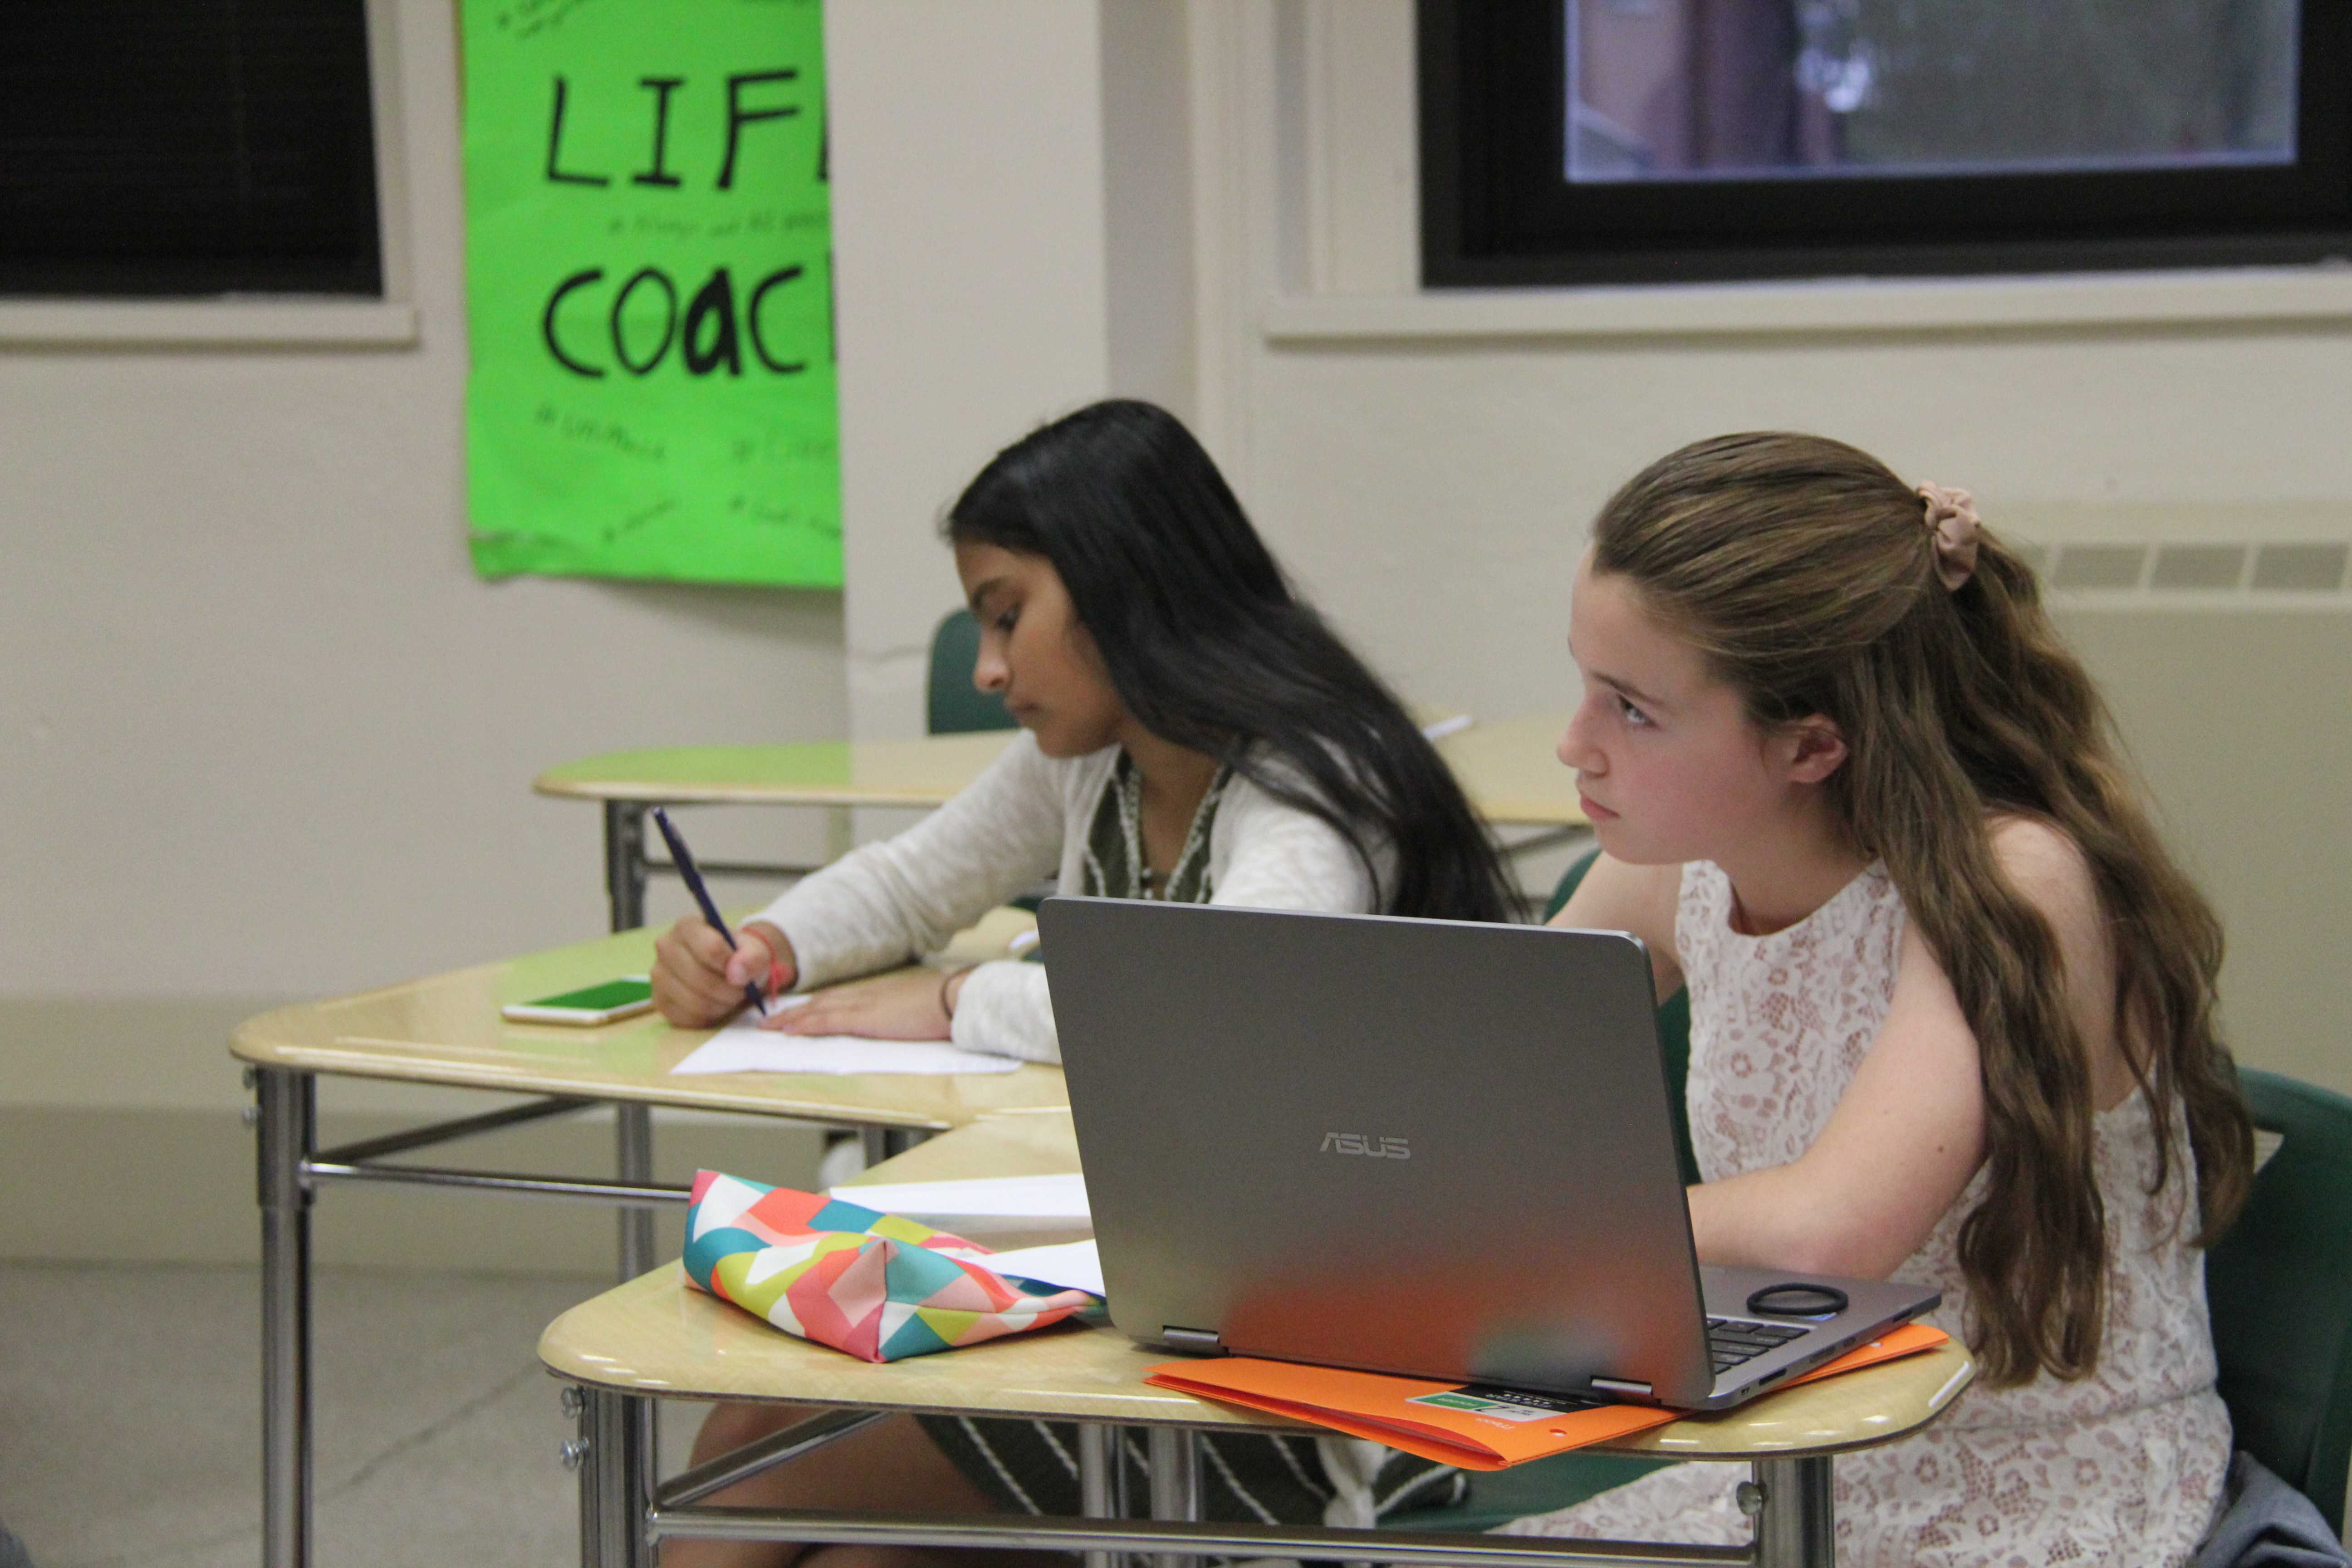 At the Wilson Wyatt Debate League Tournament, two Manual students diligently take notes as their opponent gives a rebuttal. Photo courtesy of Manual Photojournalism Classes.